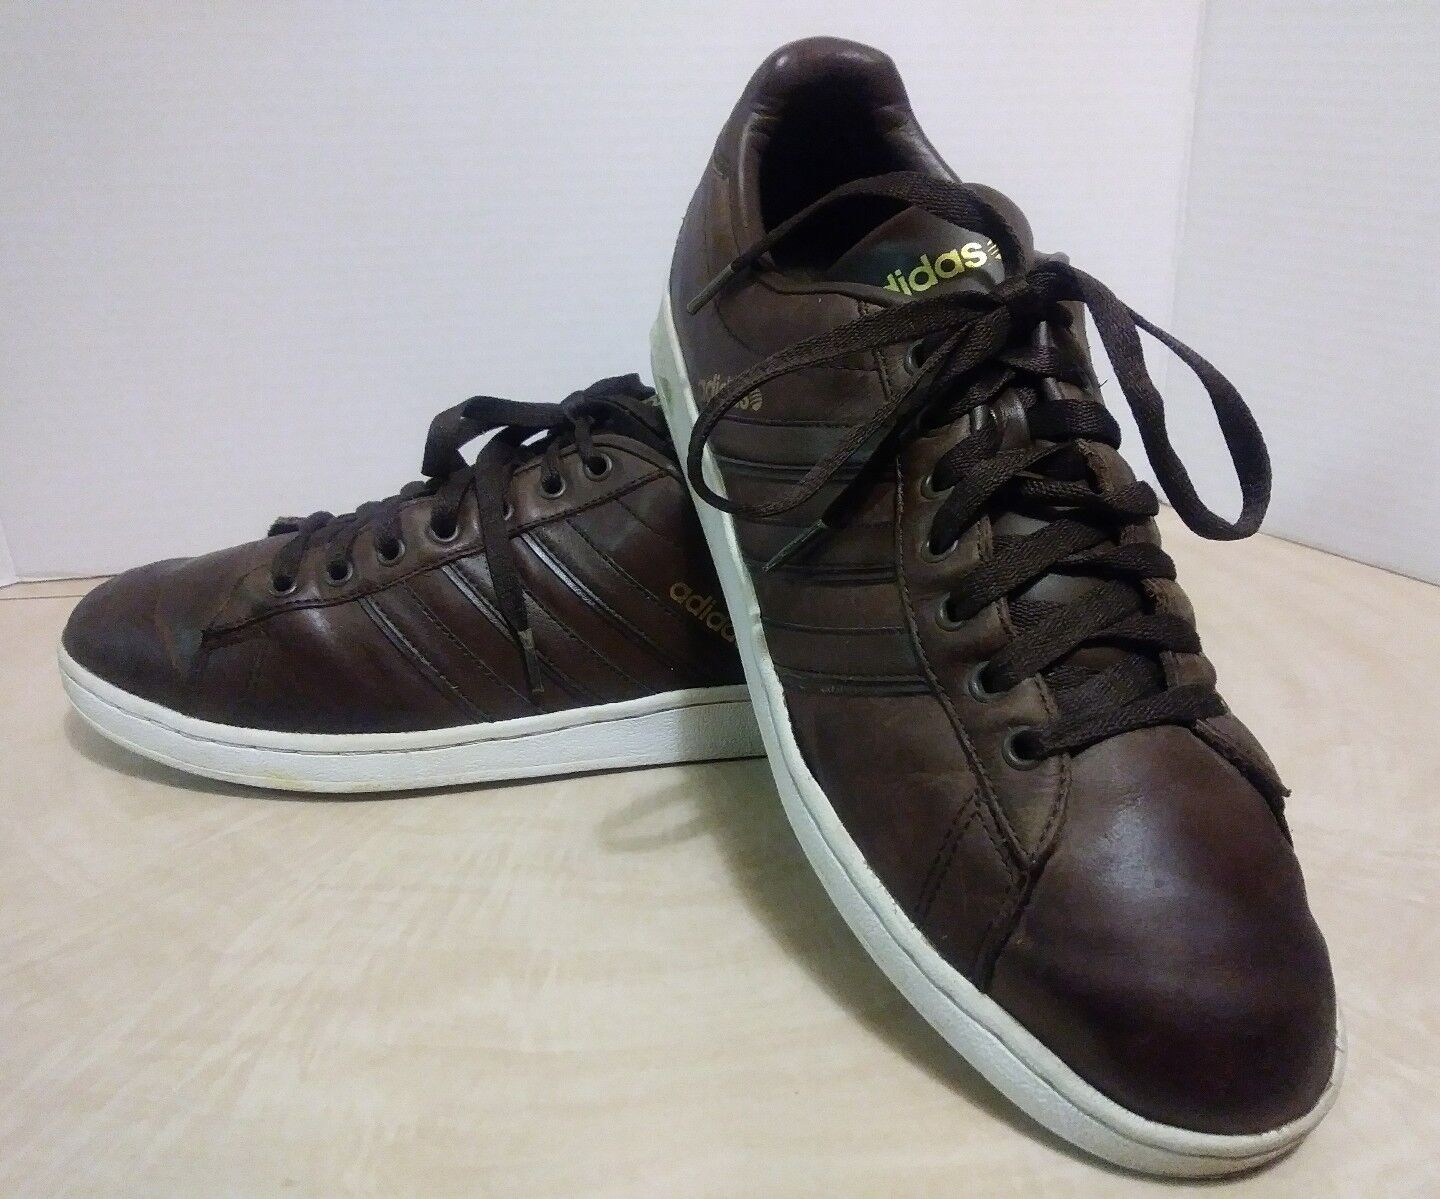 2008 ADIDAS  BROWN G10158 size 11 - COOL SHOE